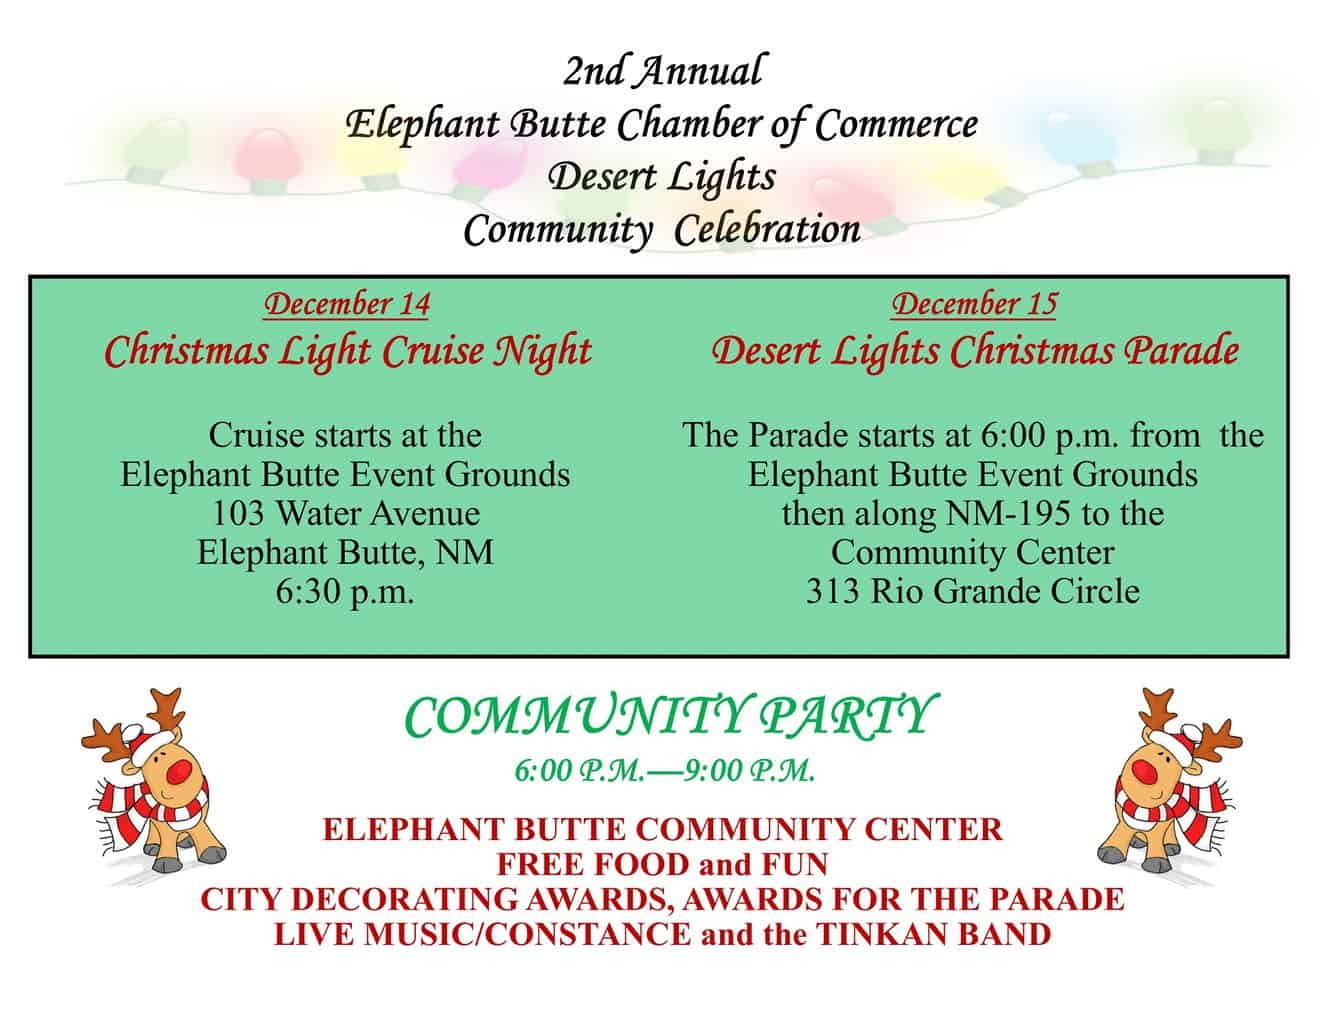 Desert Lights Community Celebration